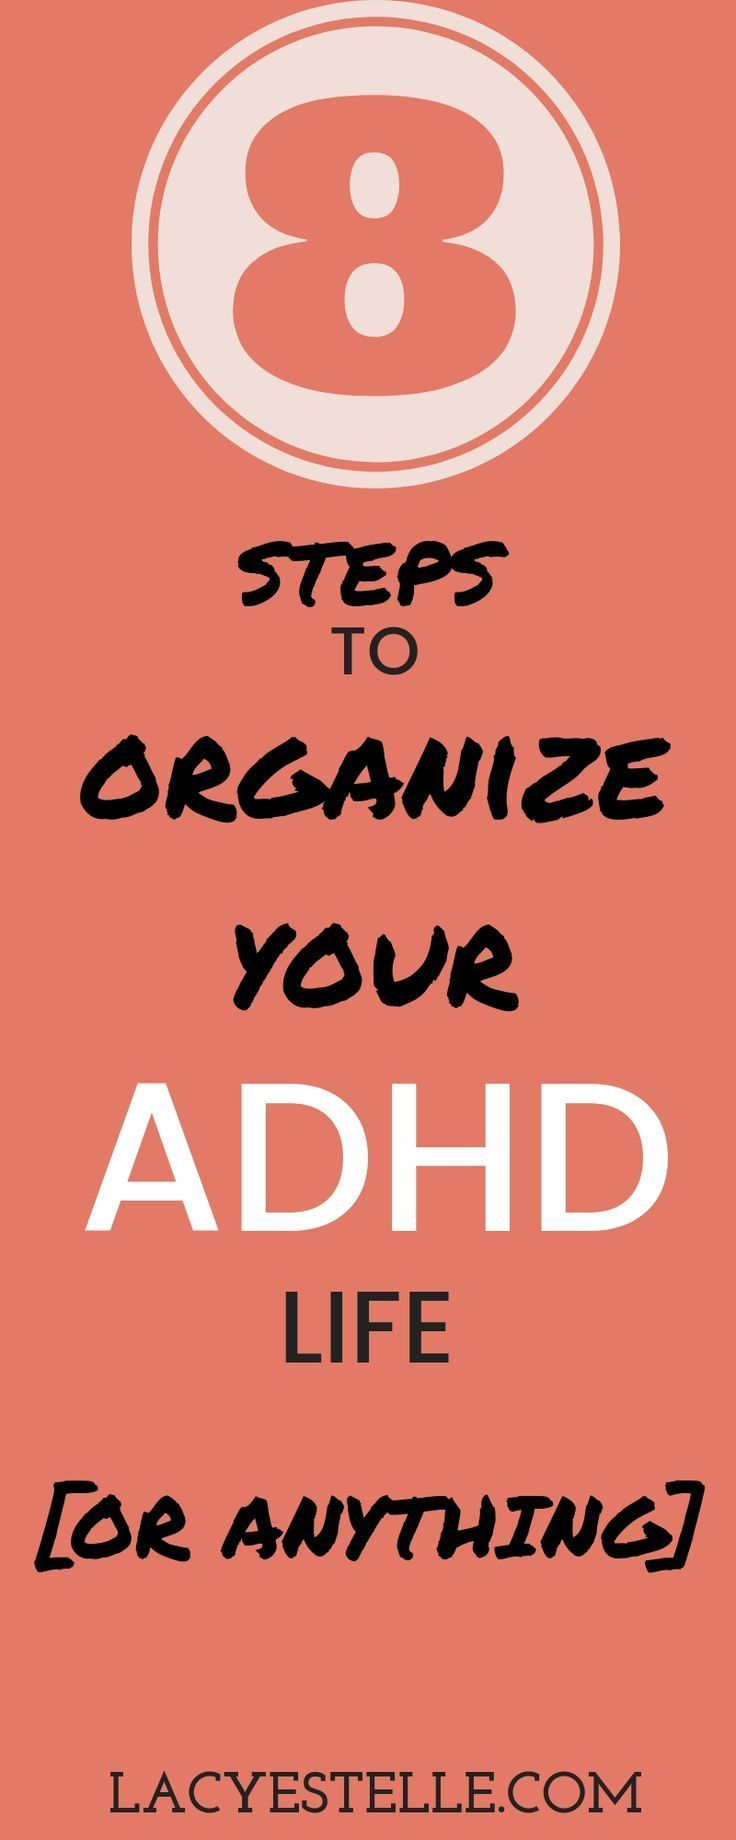 Pin On Add Adhd Attention Deficit Hyperactivity Disorder